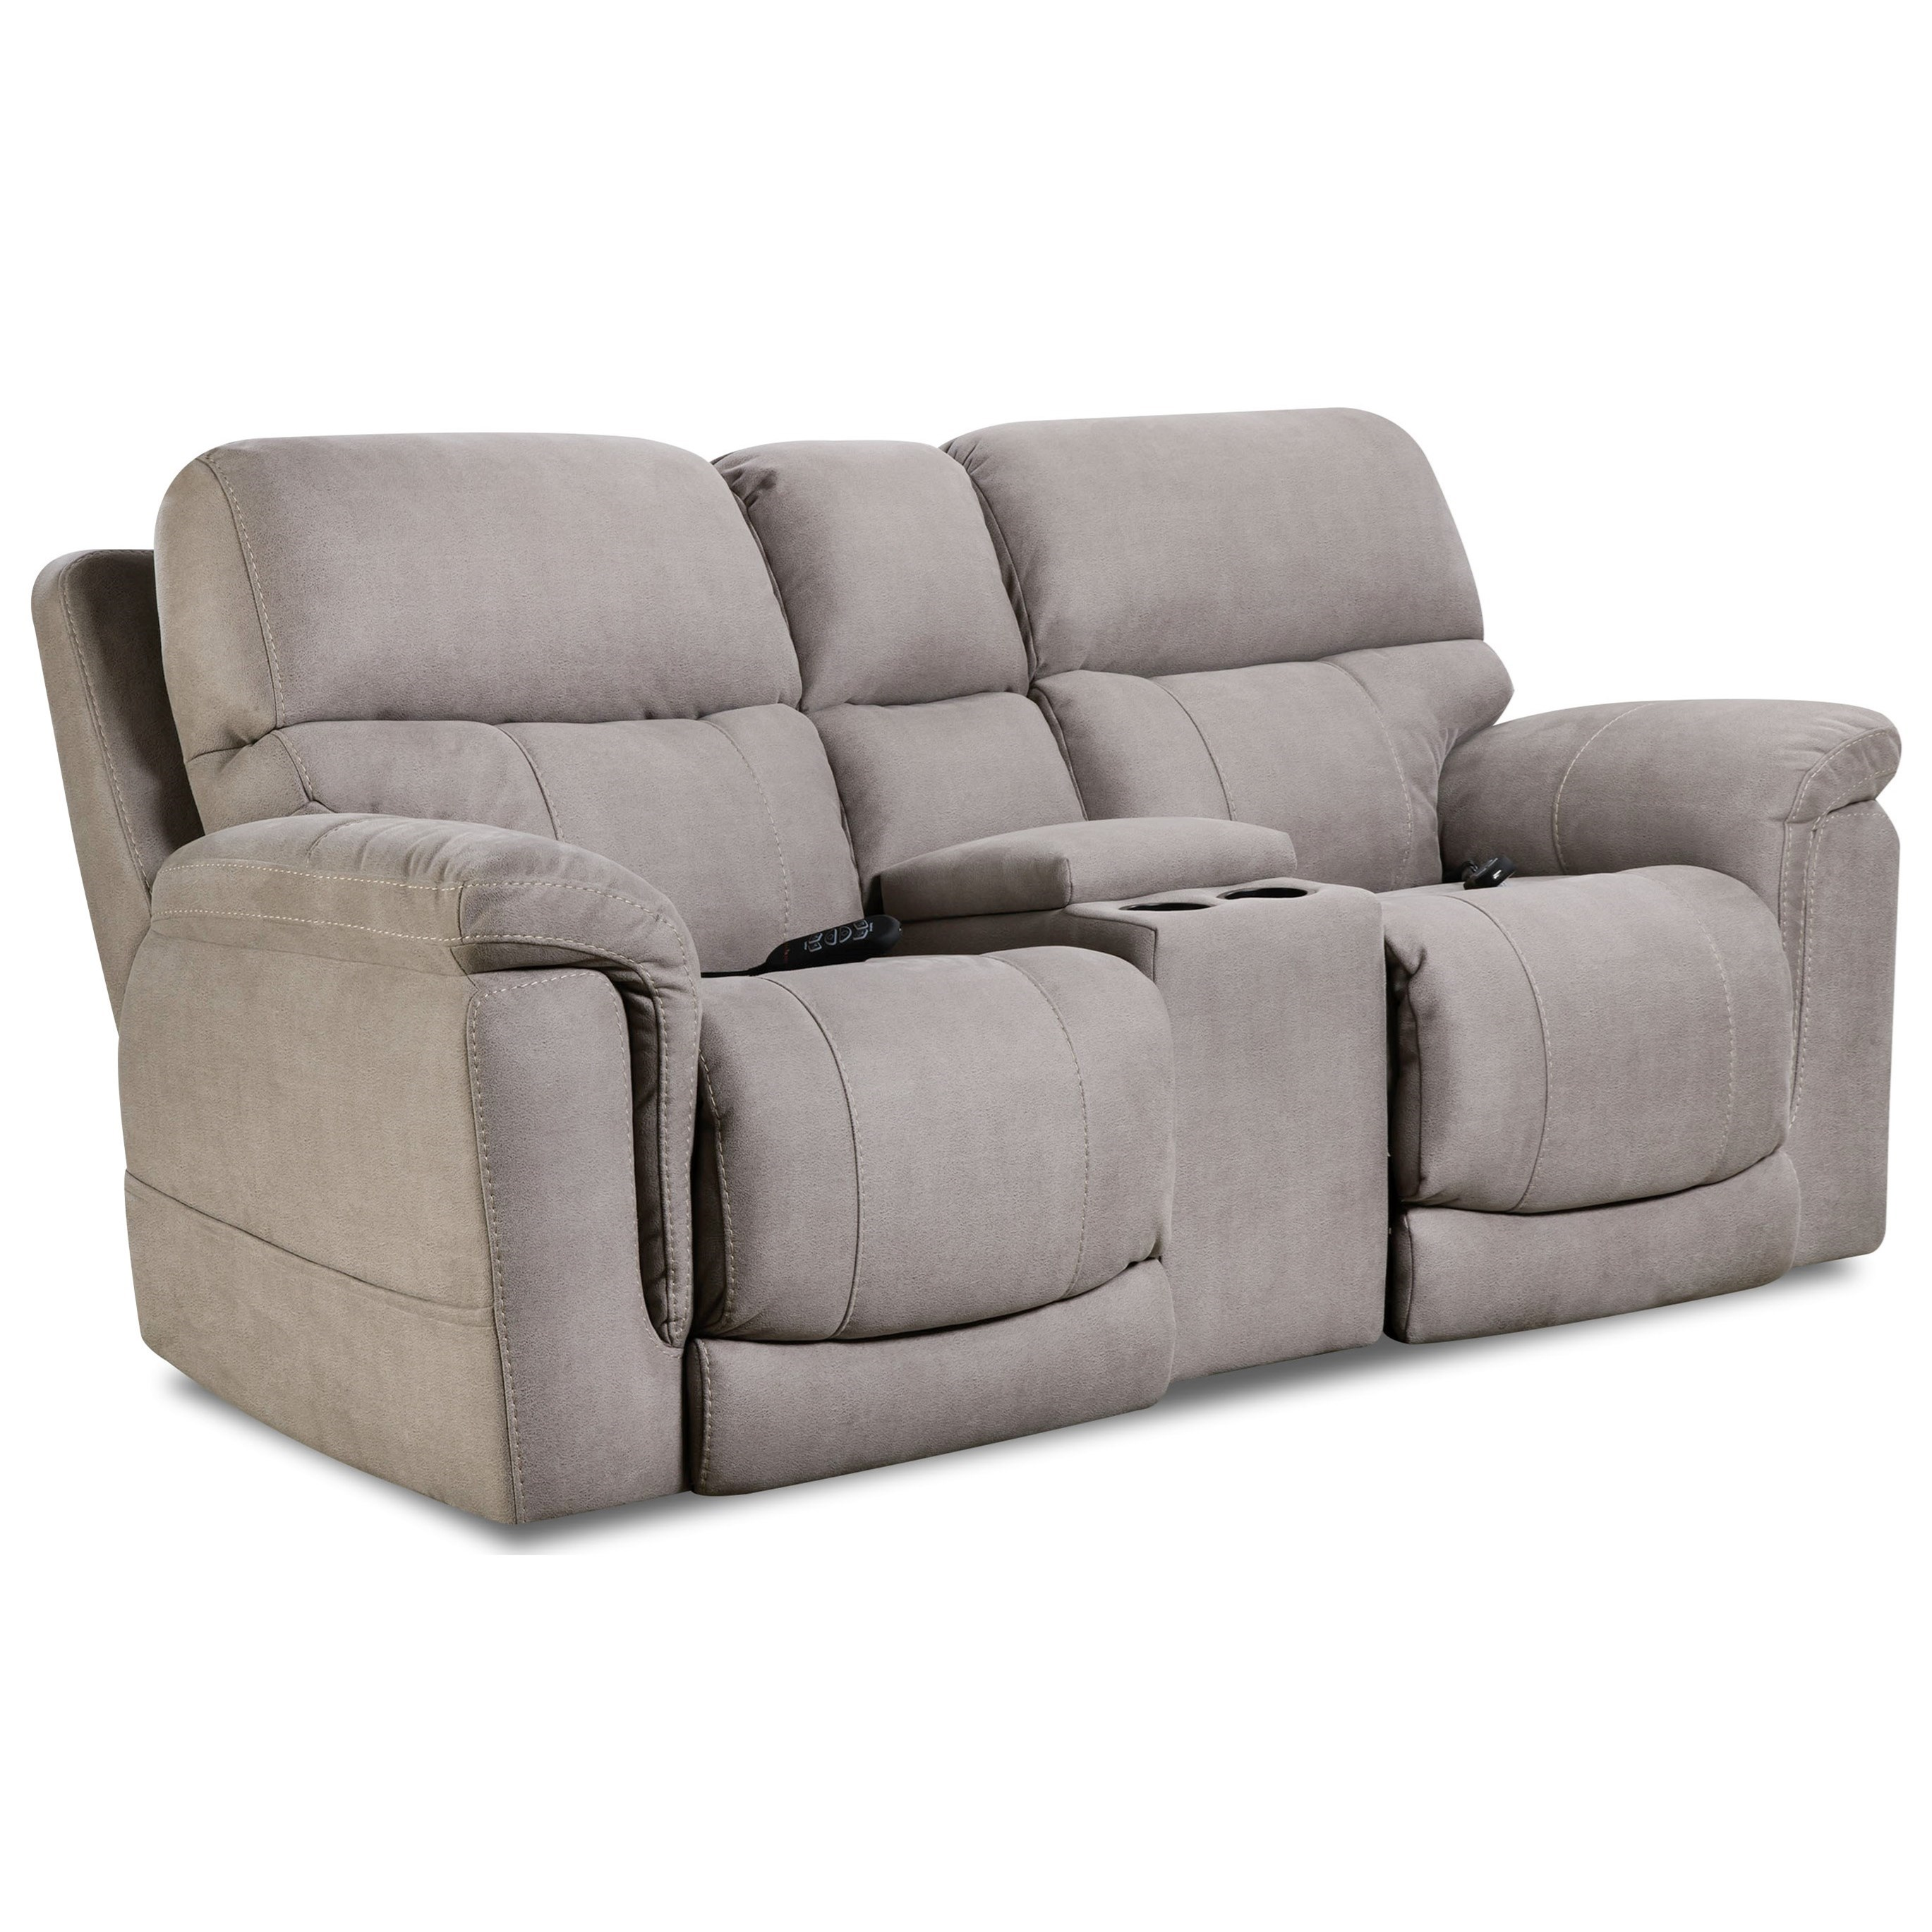 175 Collection Power Console Loveseat by HomeStretch at Pilgrim Furniture City